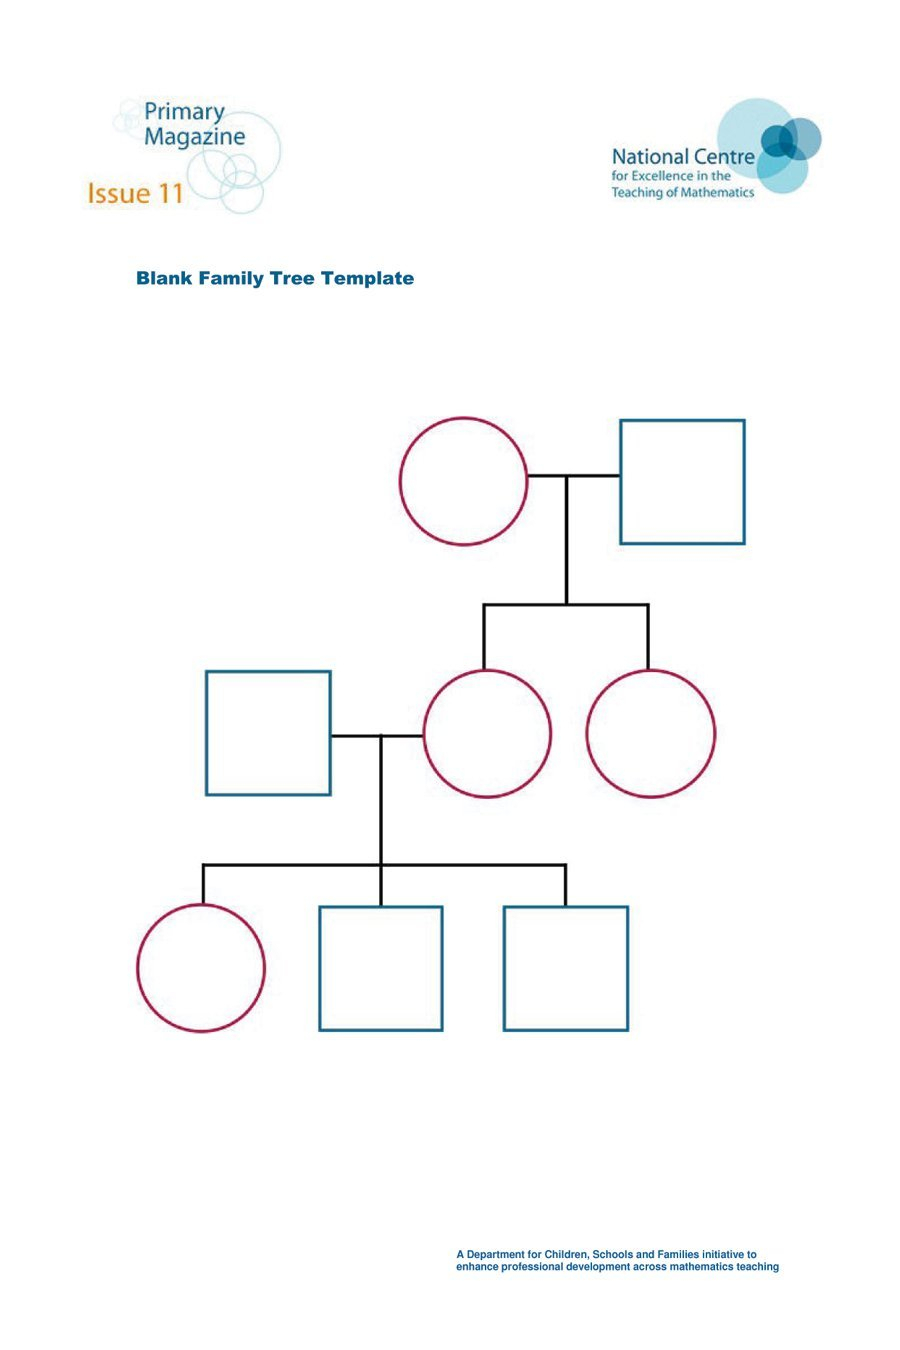 Family Tree Spreadsheet Template Throughout 50  Free Family Tree Templates Word, Excel, Pdf  Template Lab